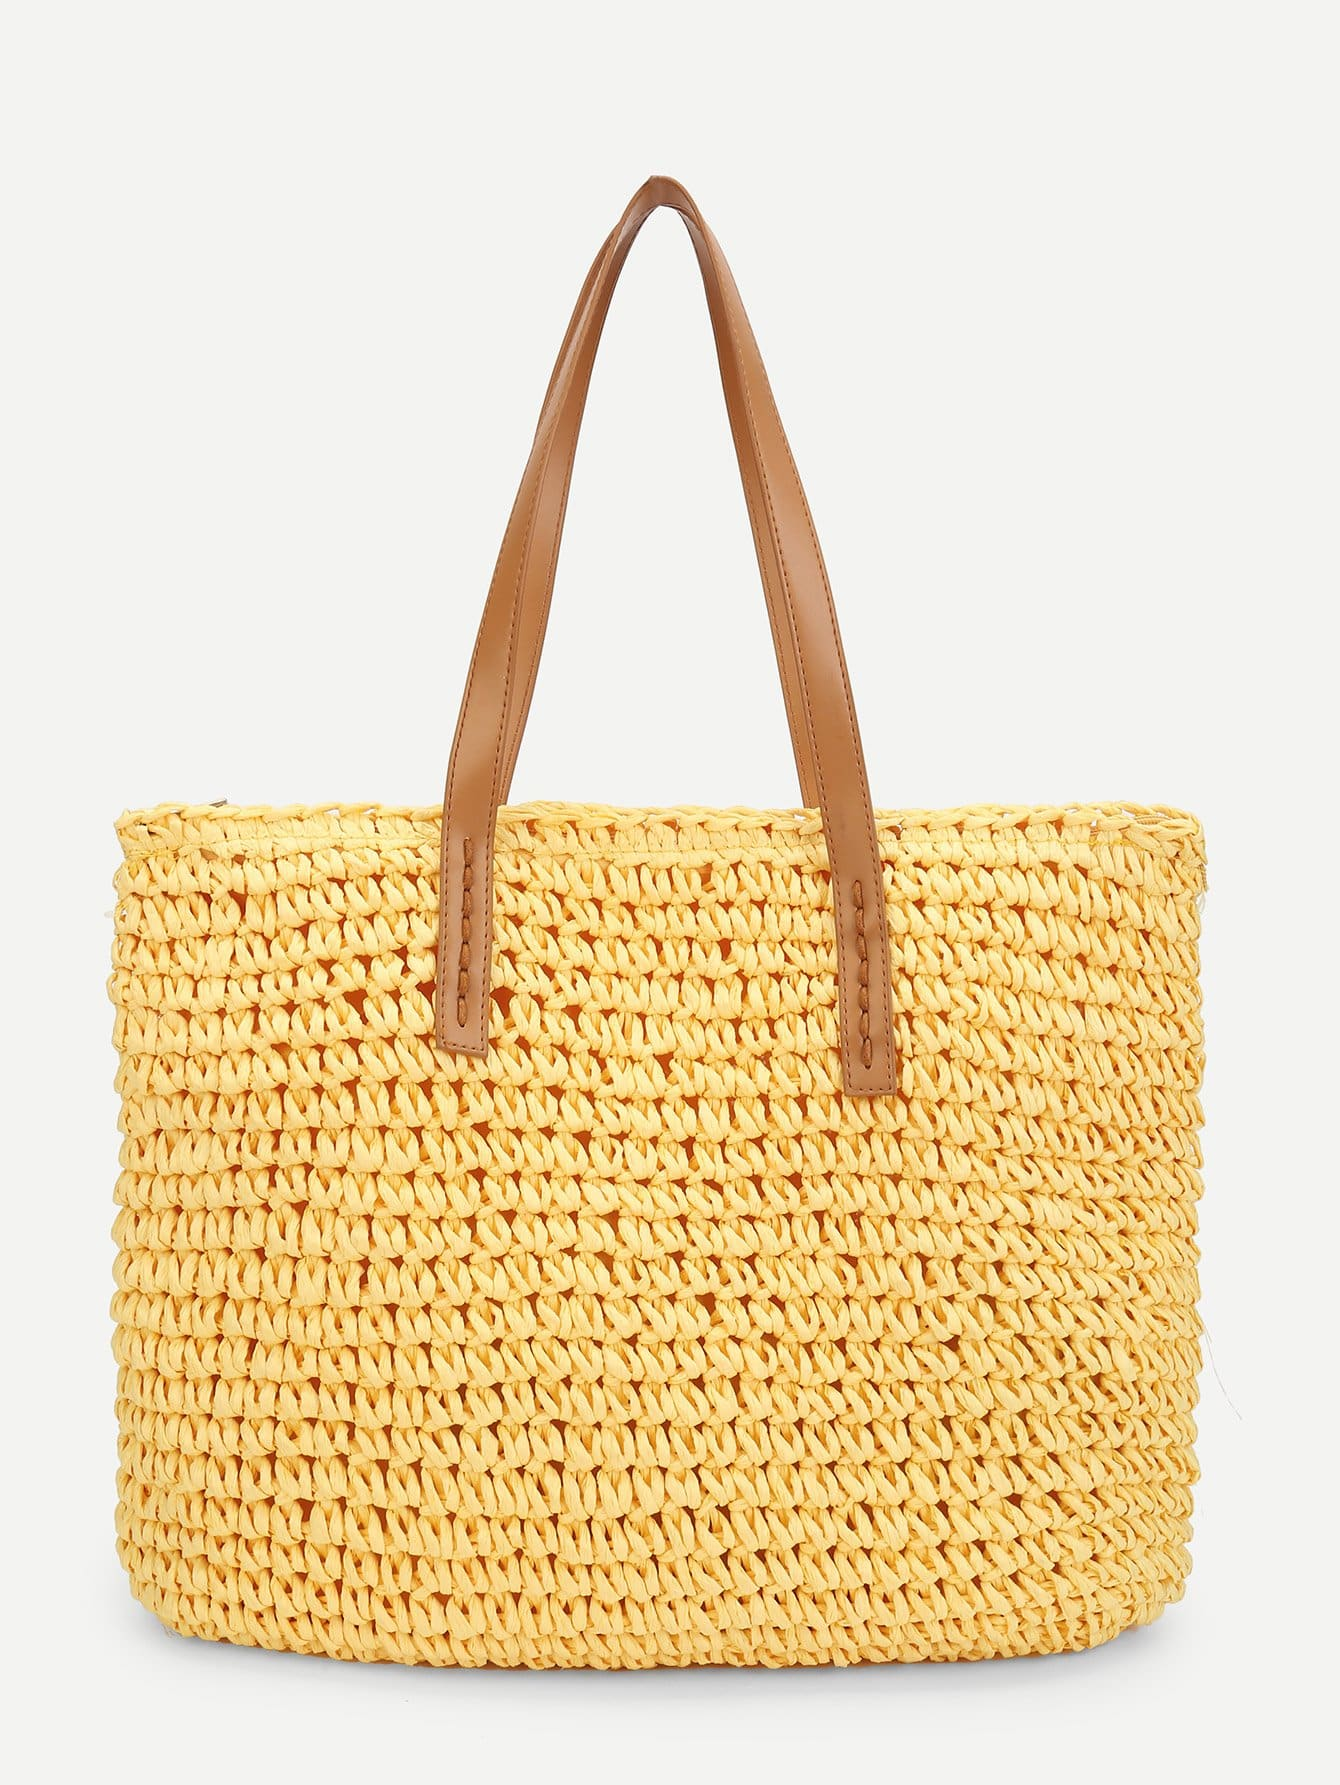 Woven Bag With Double Handle woven bag with double handle